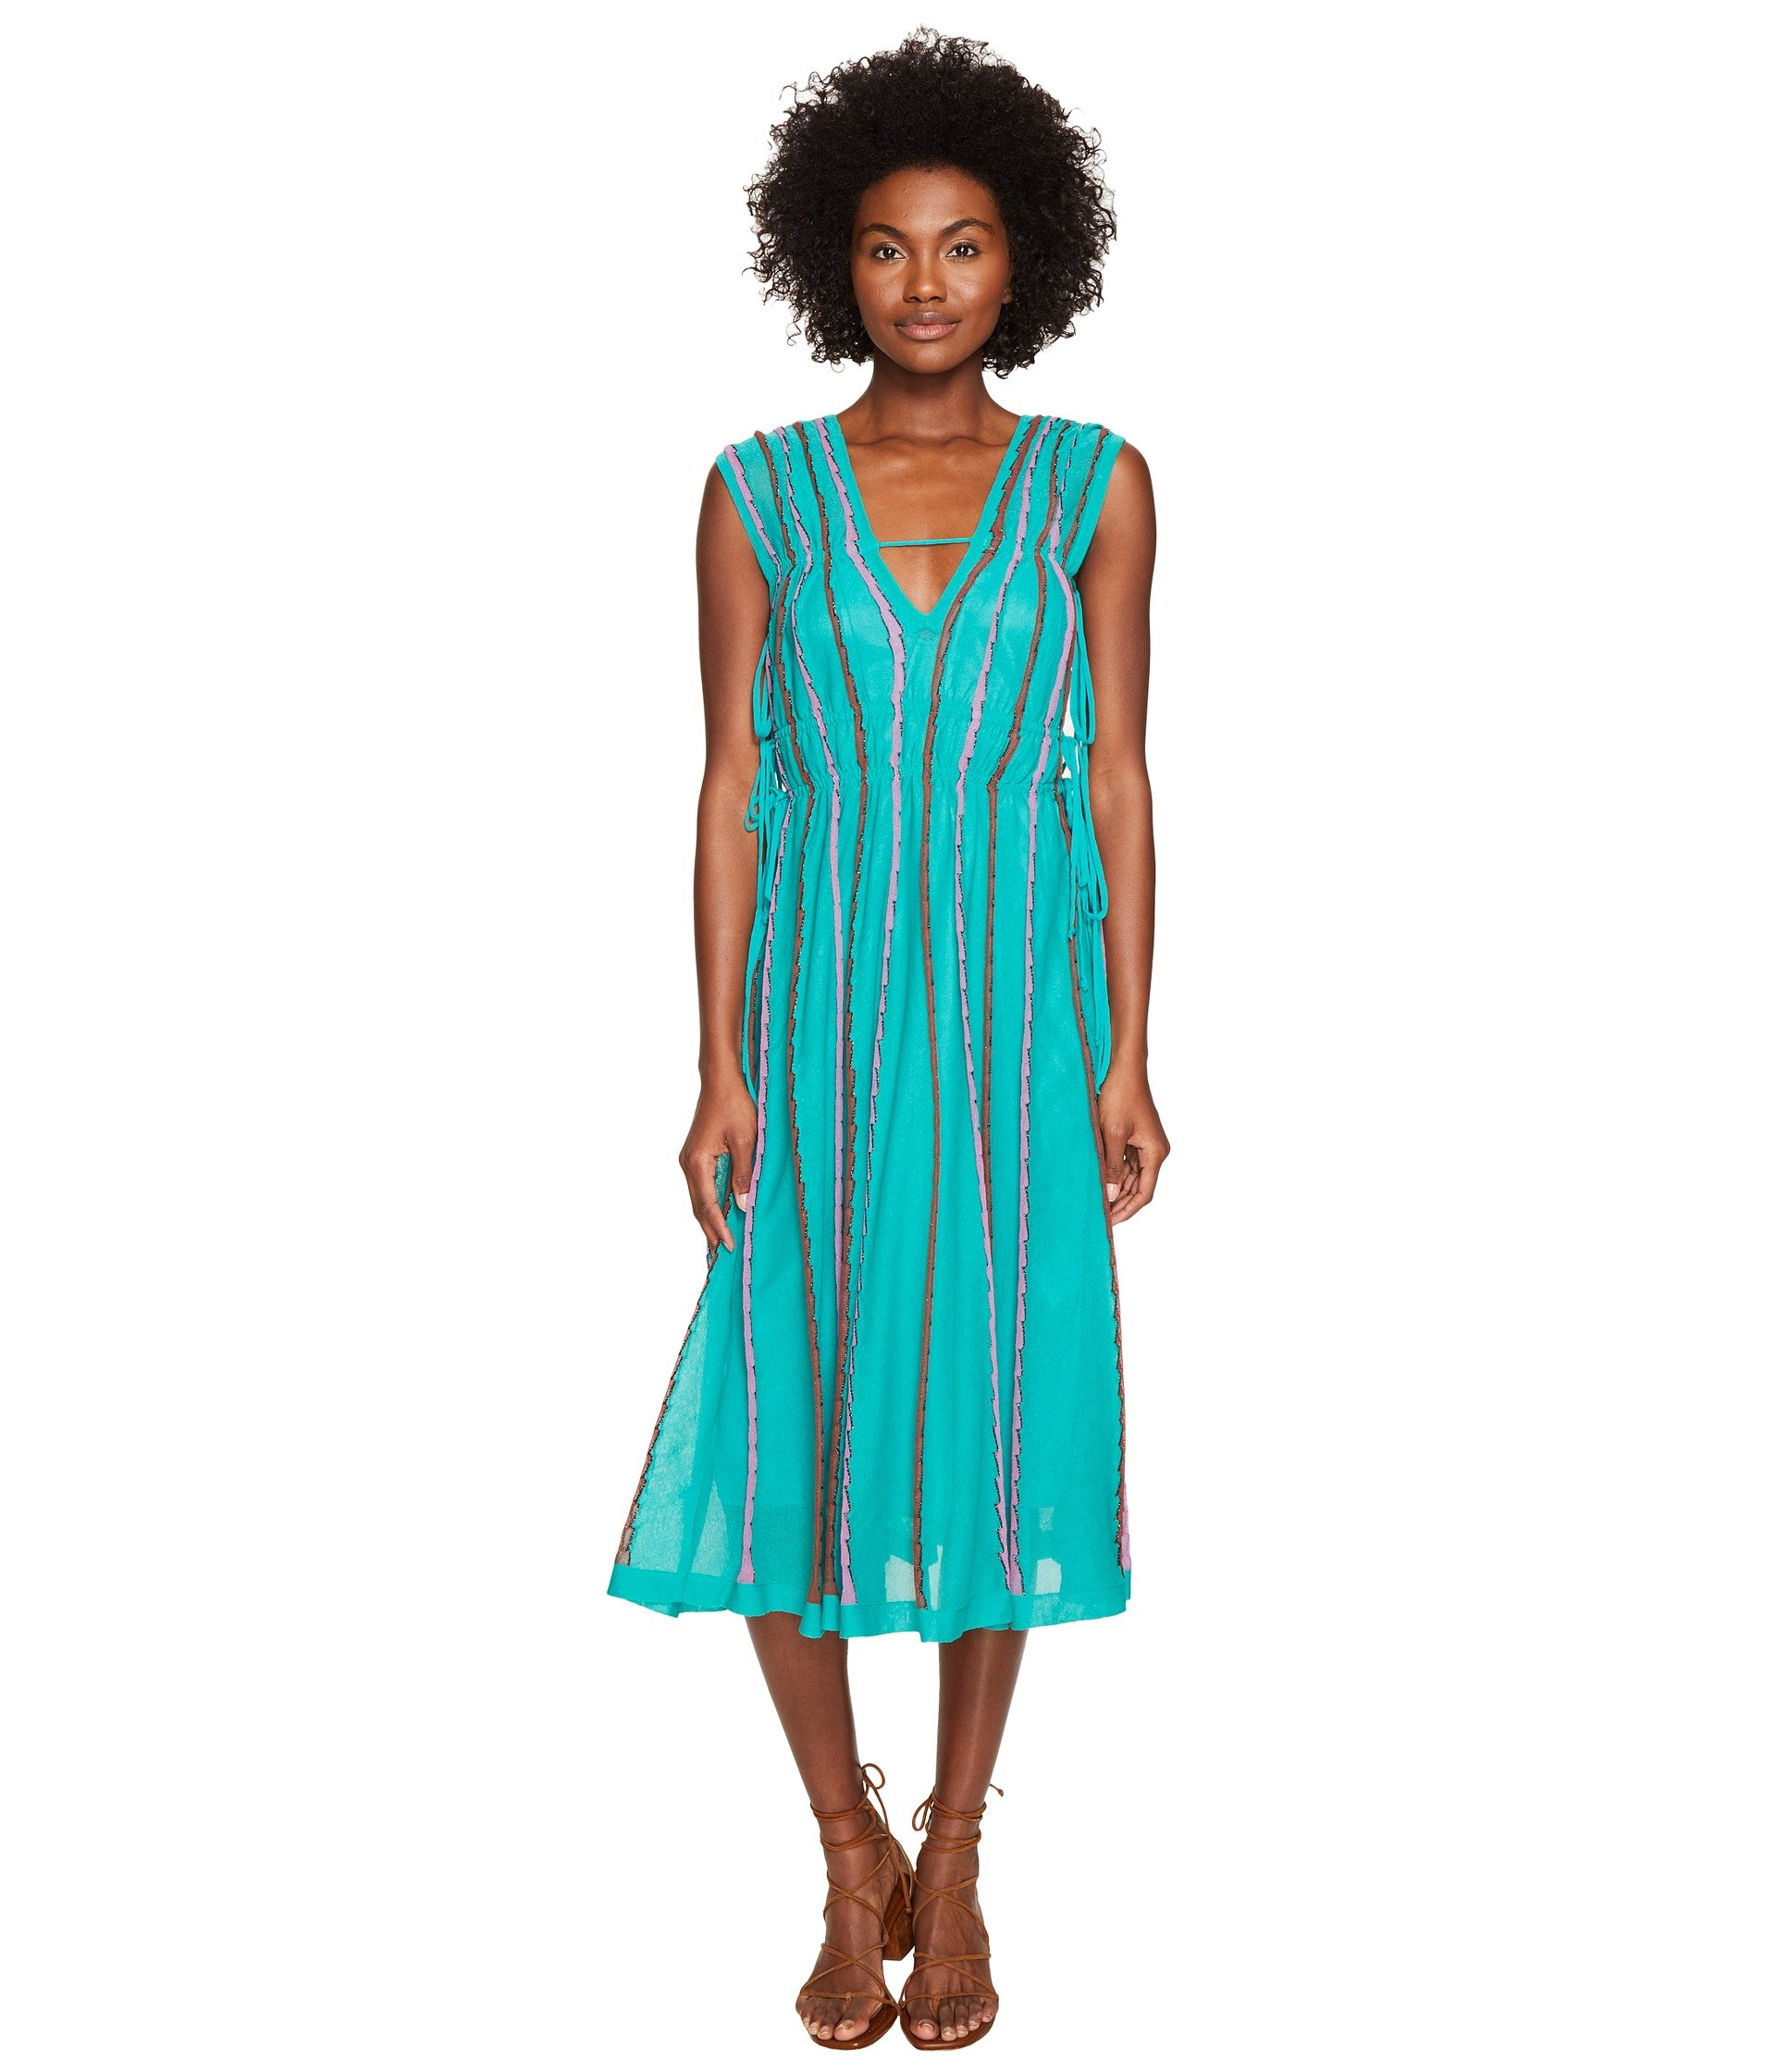 Vertical Triangle Knit Dress, Turquoise